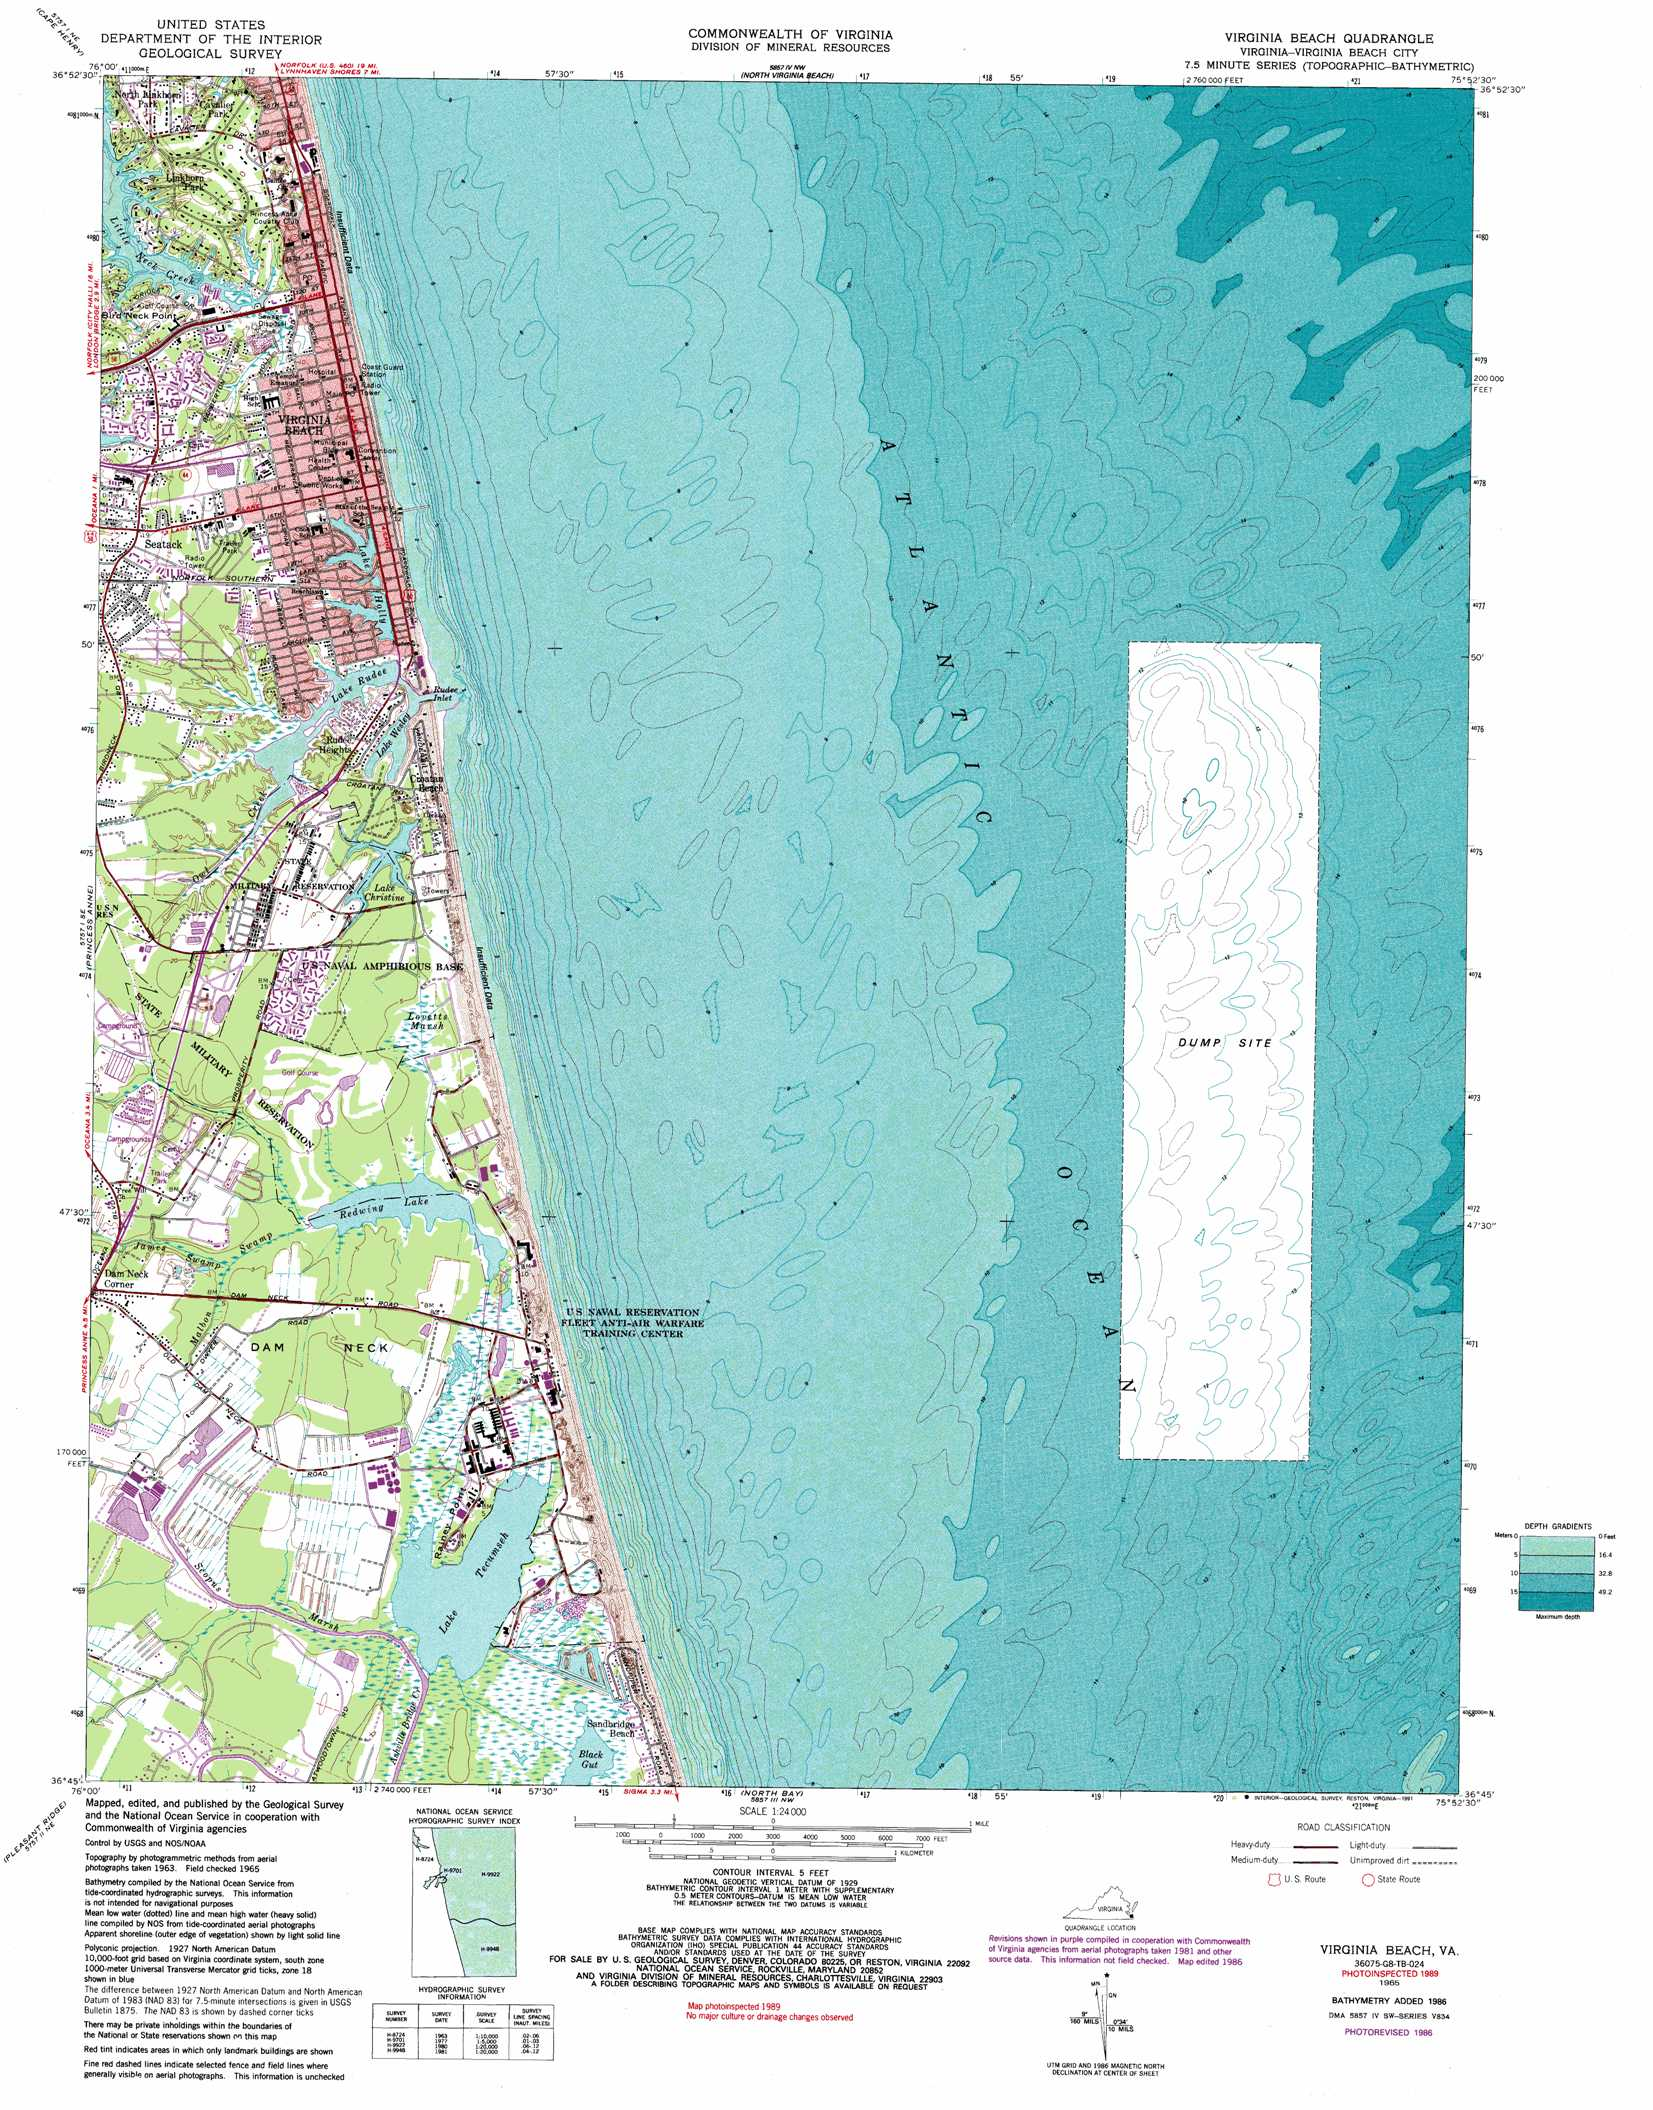 Virginia Beach topographic map VA USGS Topo Quad 36075g8